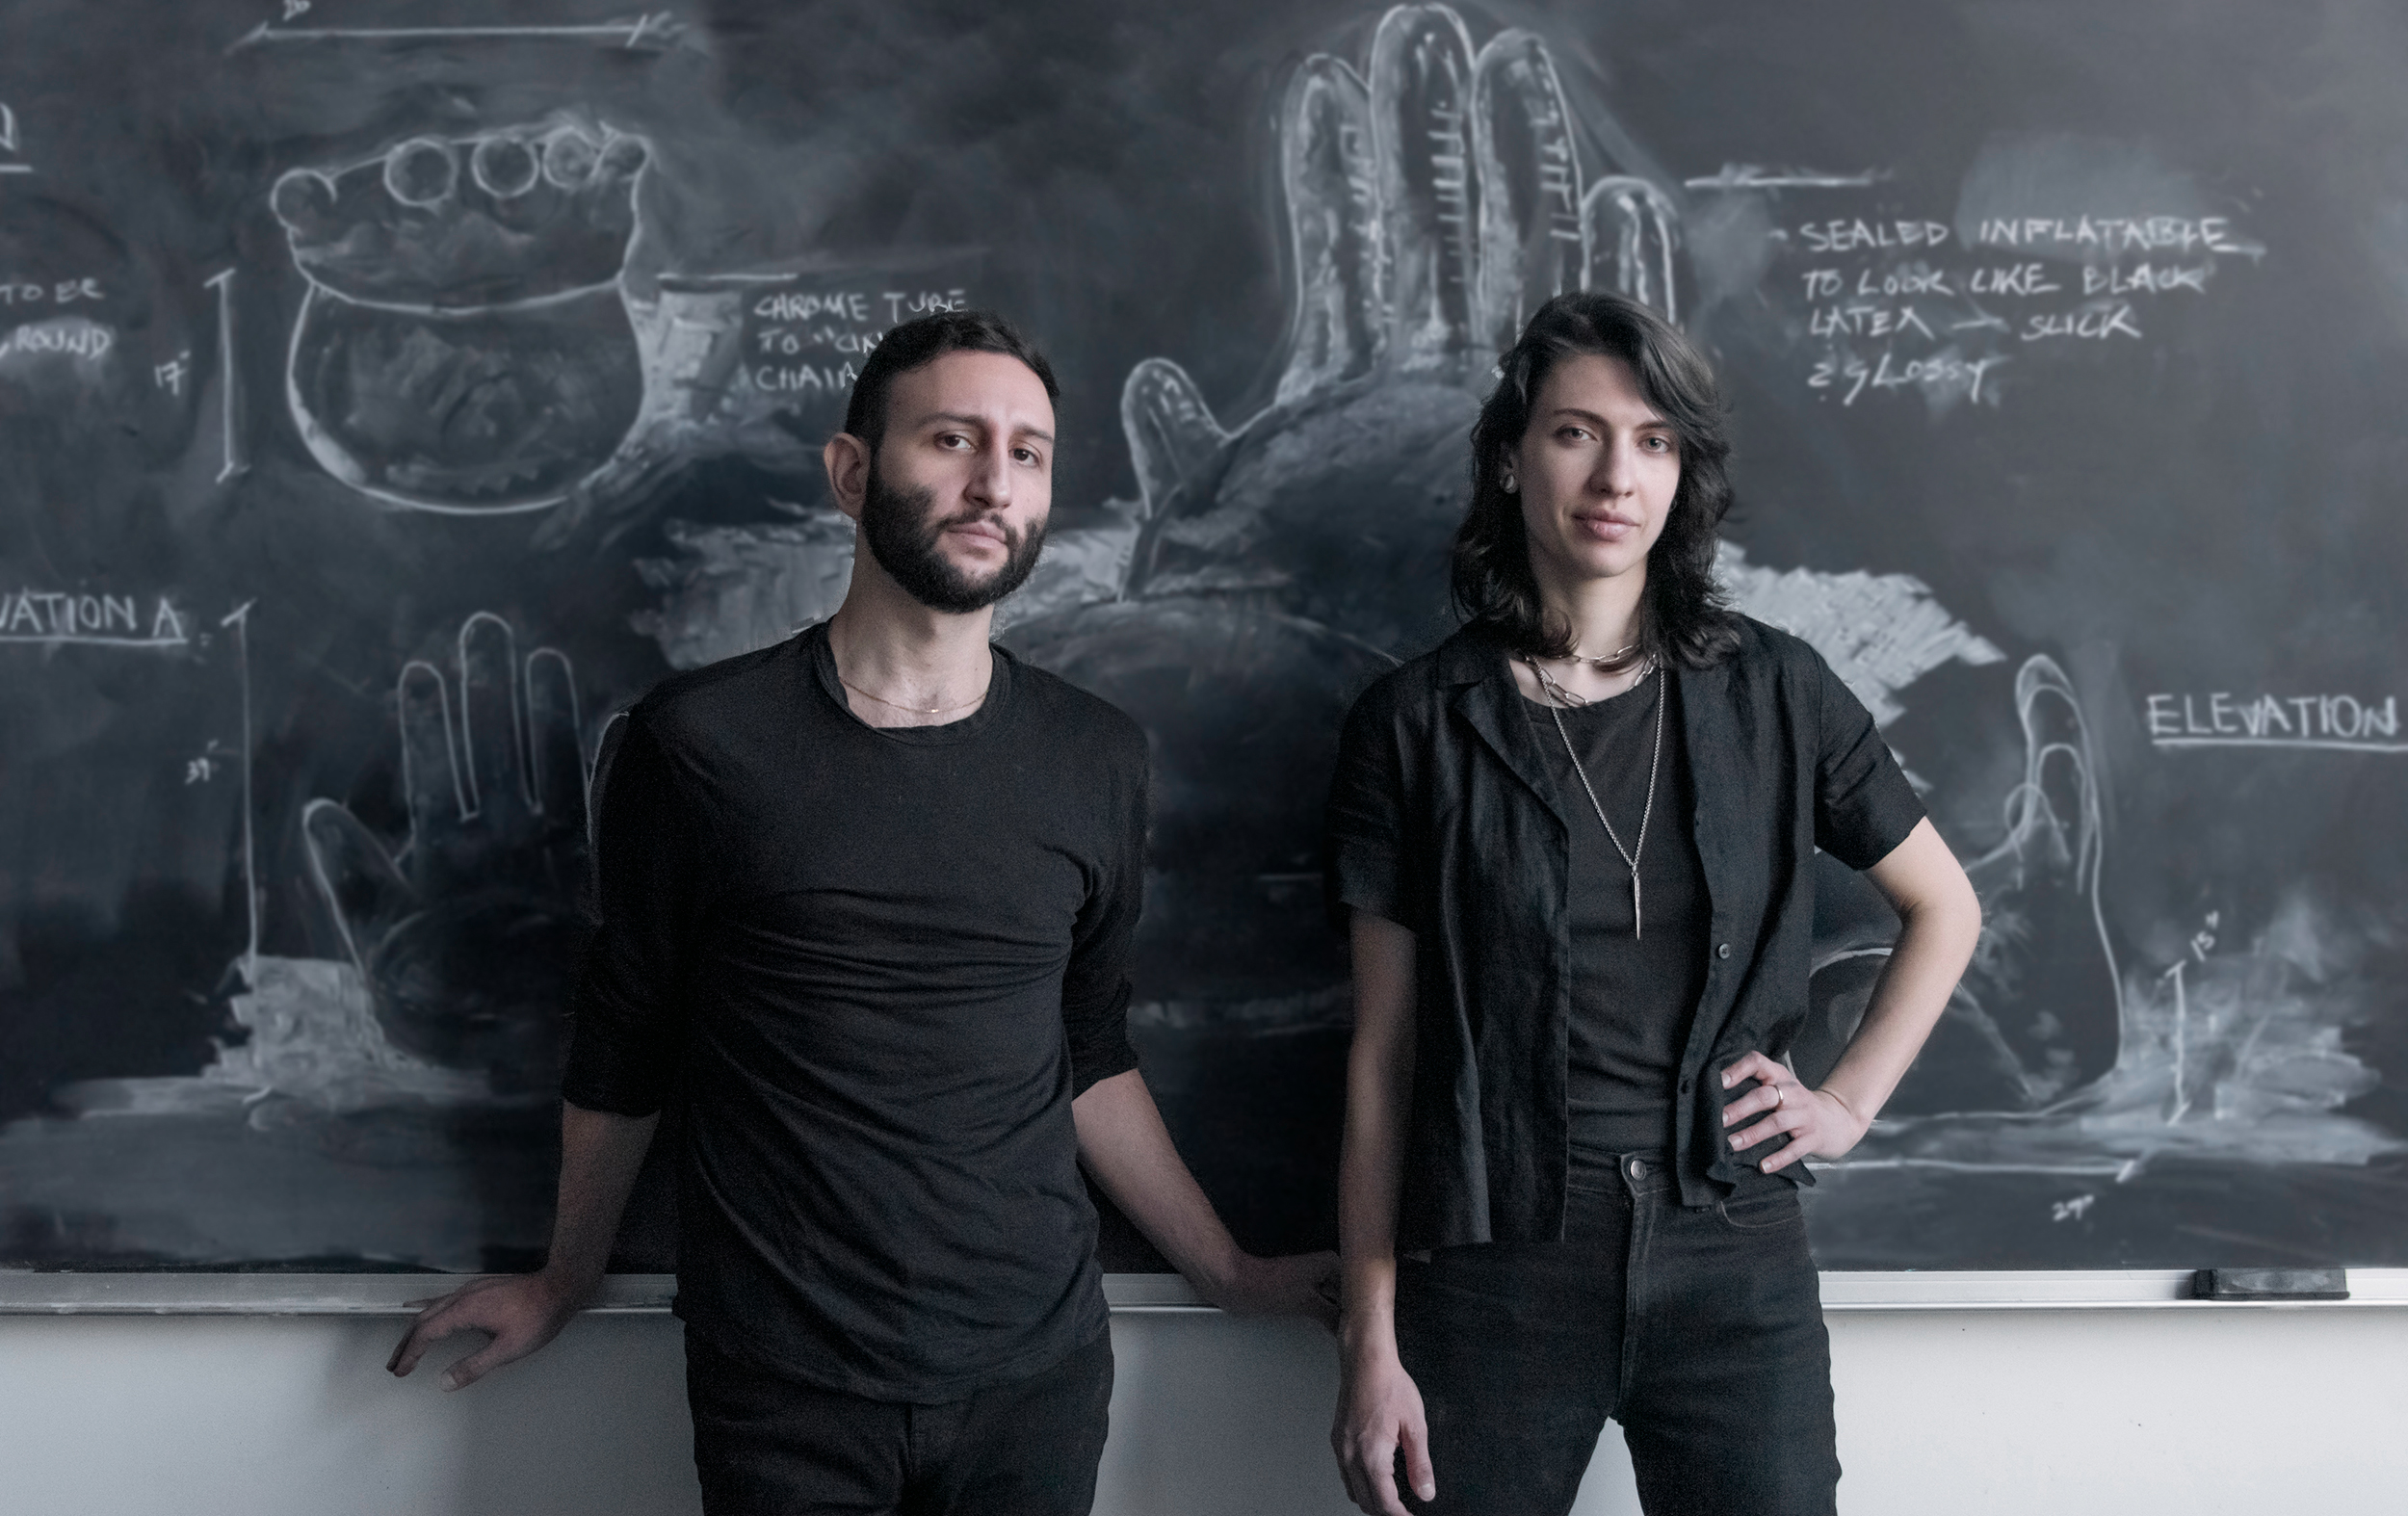 Jeremy Silberberg and Erica Sellers pose in front of their interior designs